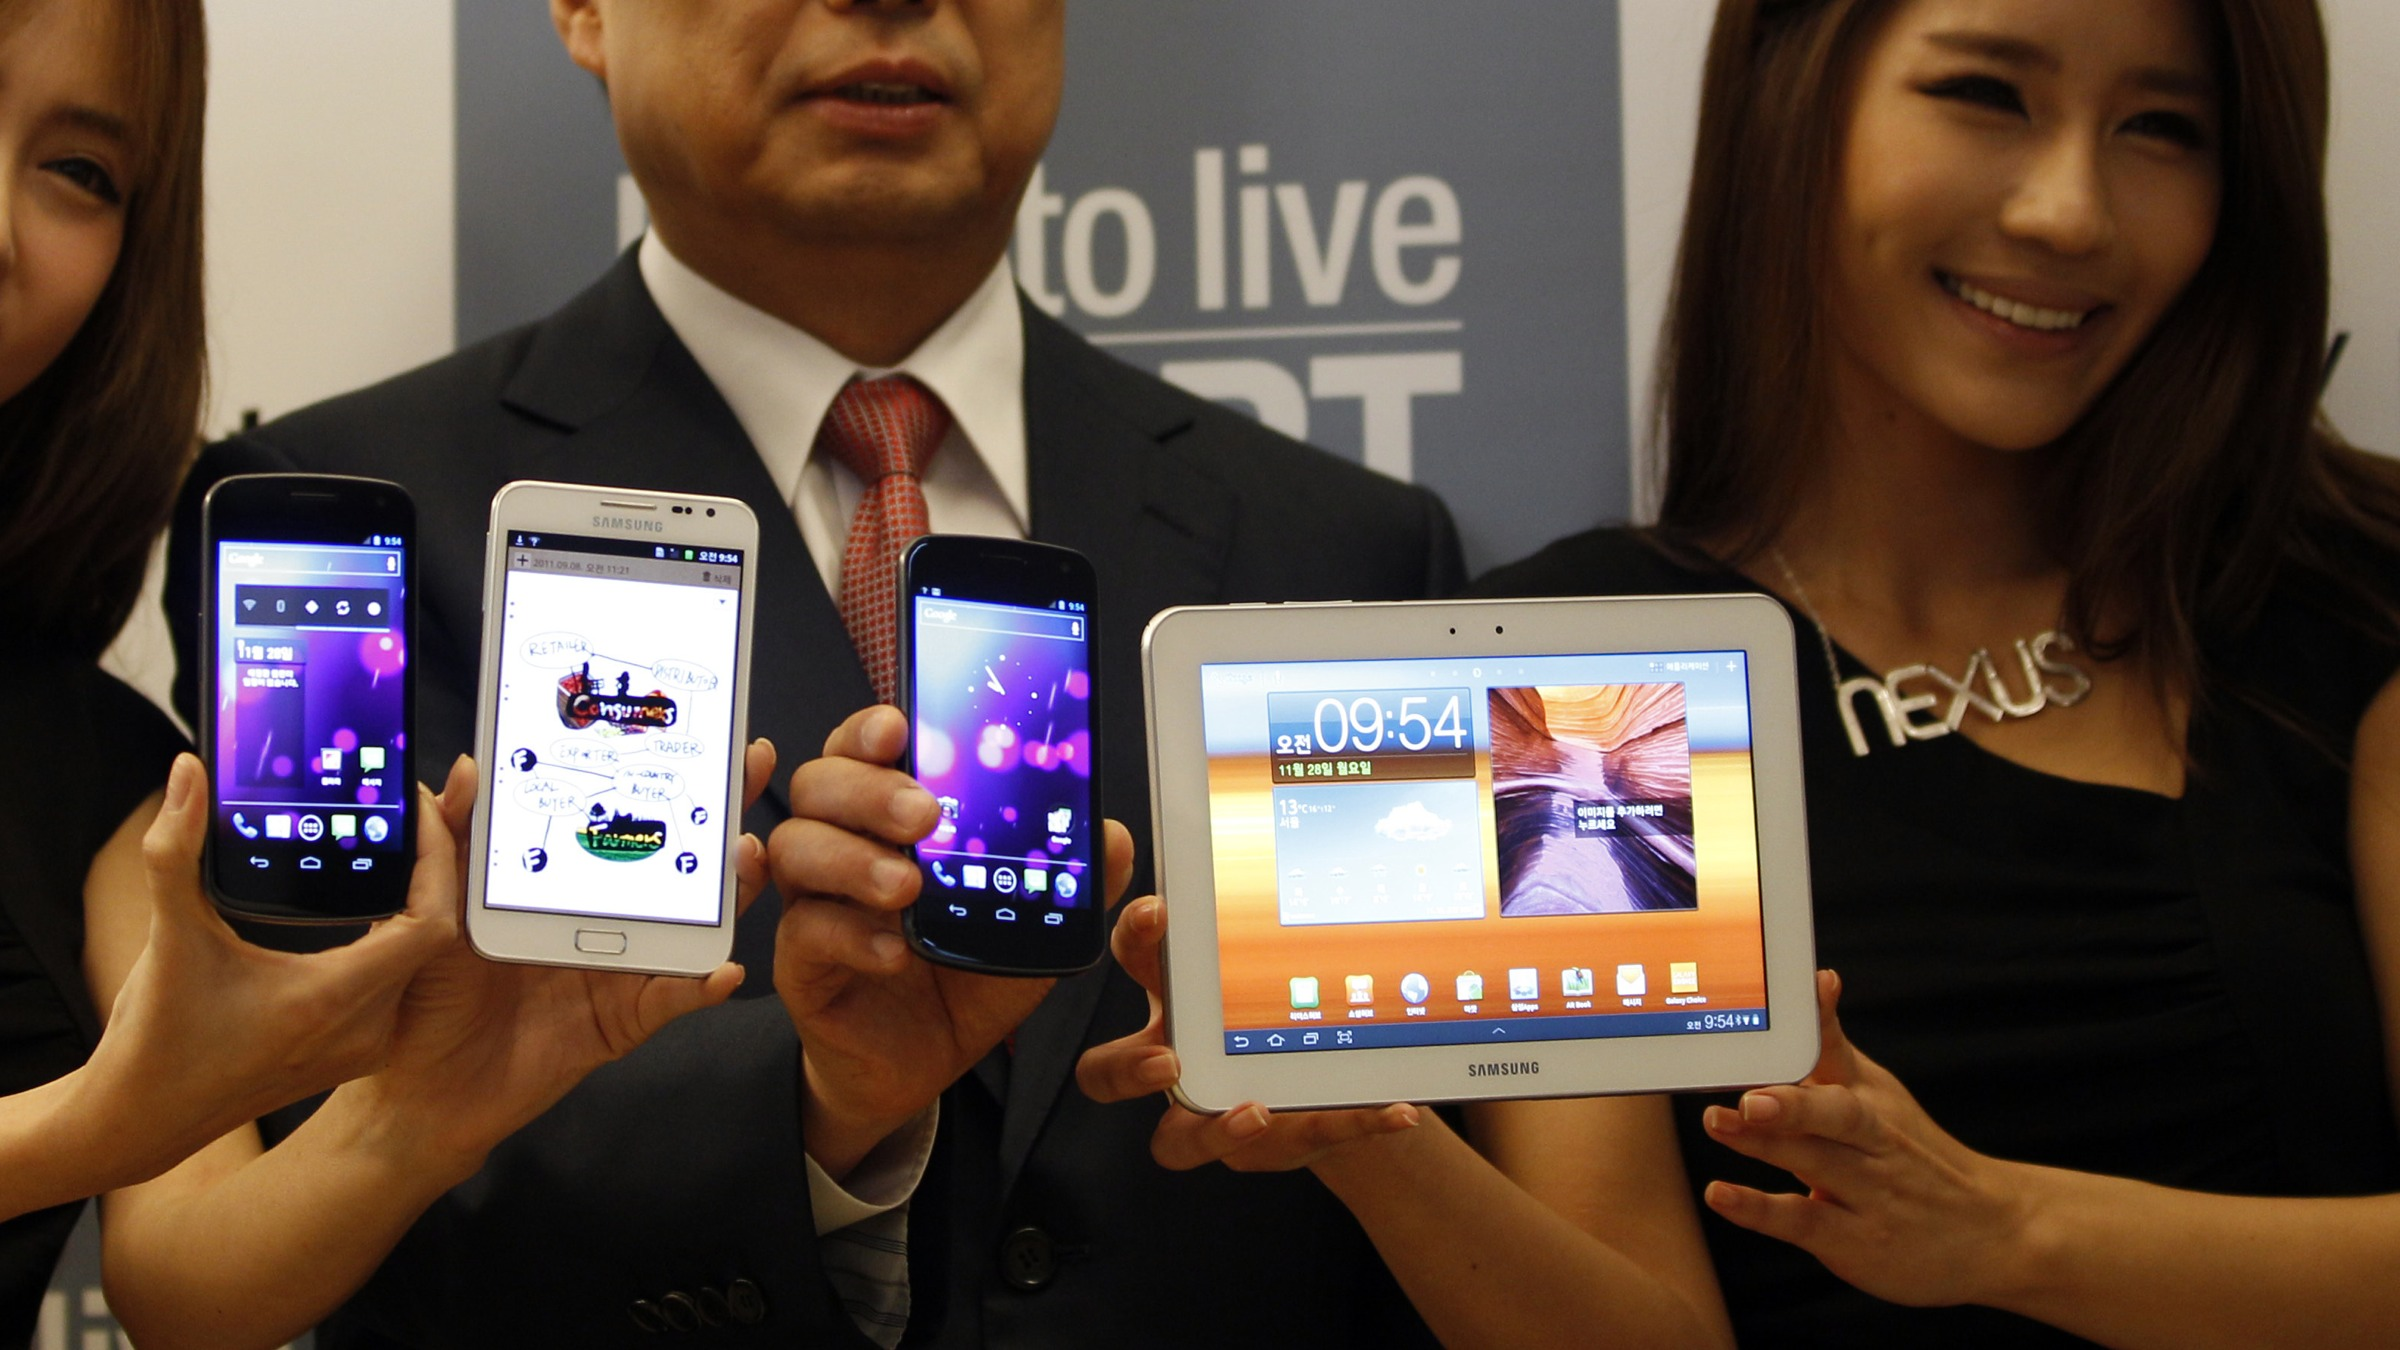 """Samsung Electronics mobile executive Shin Jong-gyun, center, and models display Samsung Electronics' newest devices Galaxy Note, second from left, which features the 5.29"""" Super Amoled screen and runs on the Android 2.3, Galaxy Nexus which features the 4.65 Super Amoled screen and runs on the Android 4.0, left and third from left, and the Galaxy Tab 8.9 LTE, right, during its unveiling ceremony in Seoul, South Korea, Monday, Nov. 28, 2011.(AP Photo/Lee Jin-man)"""